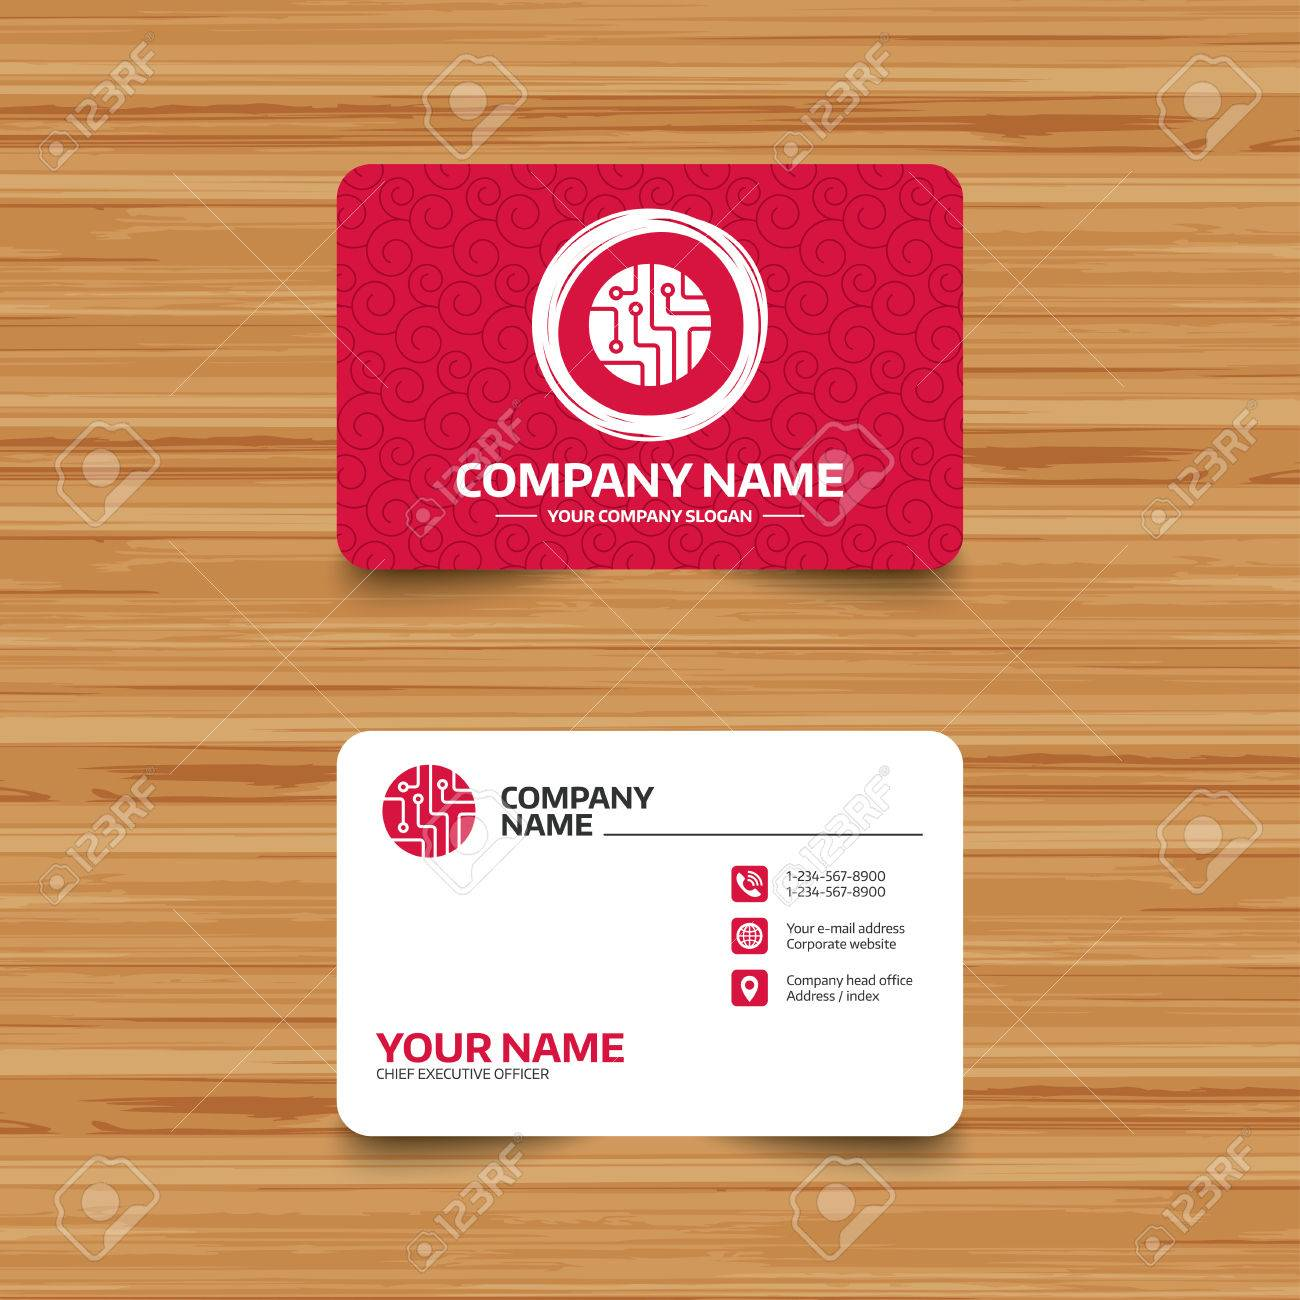 Wfg business cards choice image free business cards al capone business cards image collections free business cards business card board images free business cards magicingreecefo Images